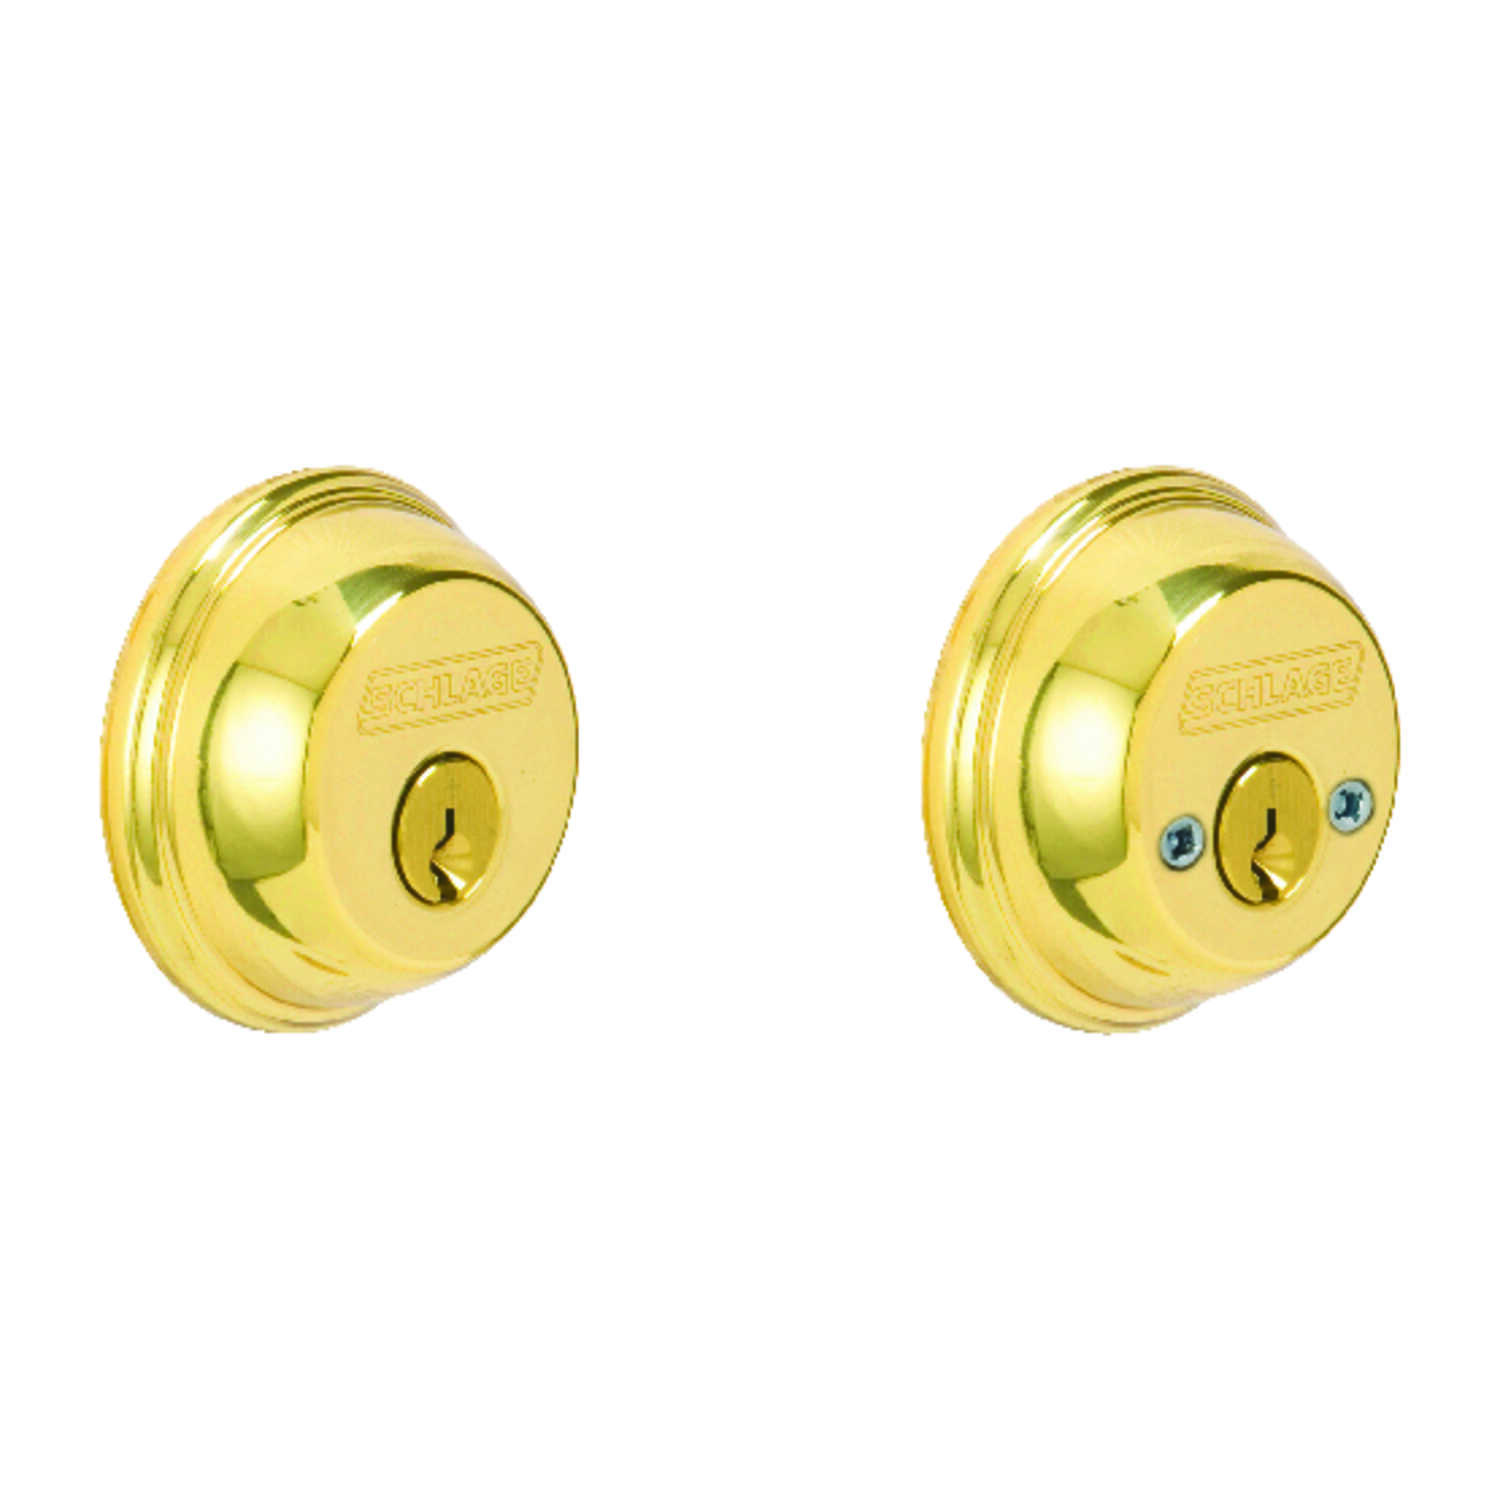 Schlage  Bright Brass  Zinc  Double Cylinder Deadbolt